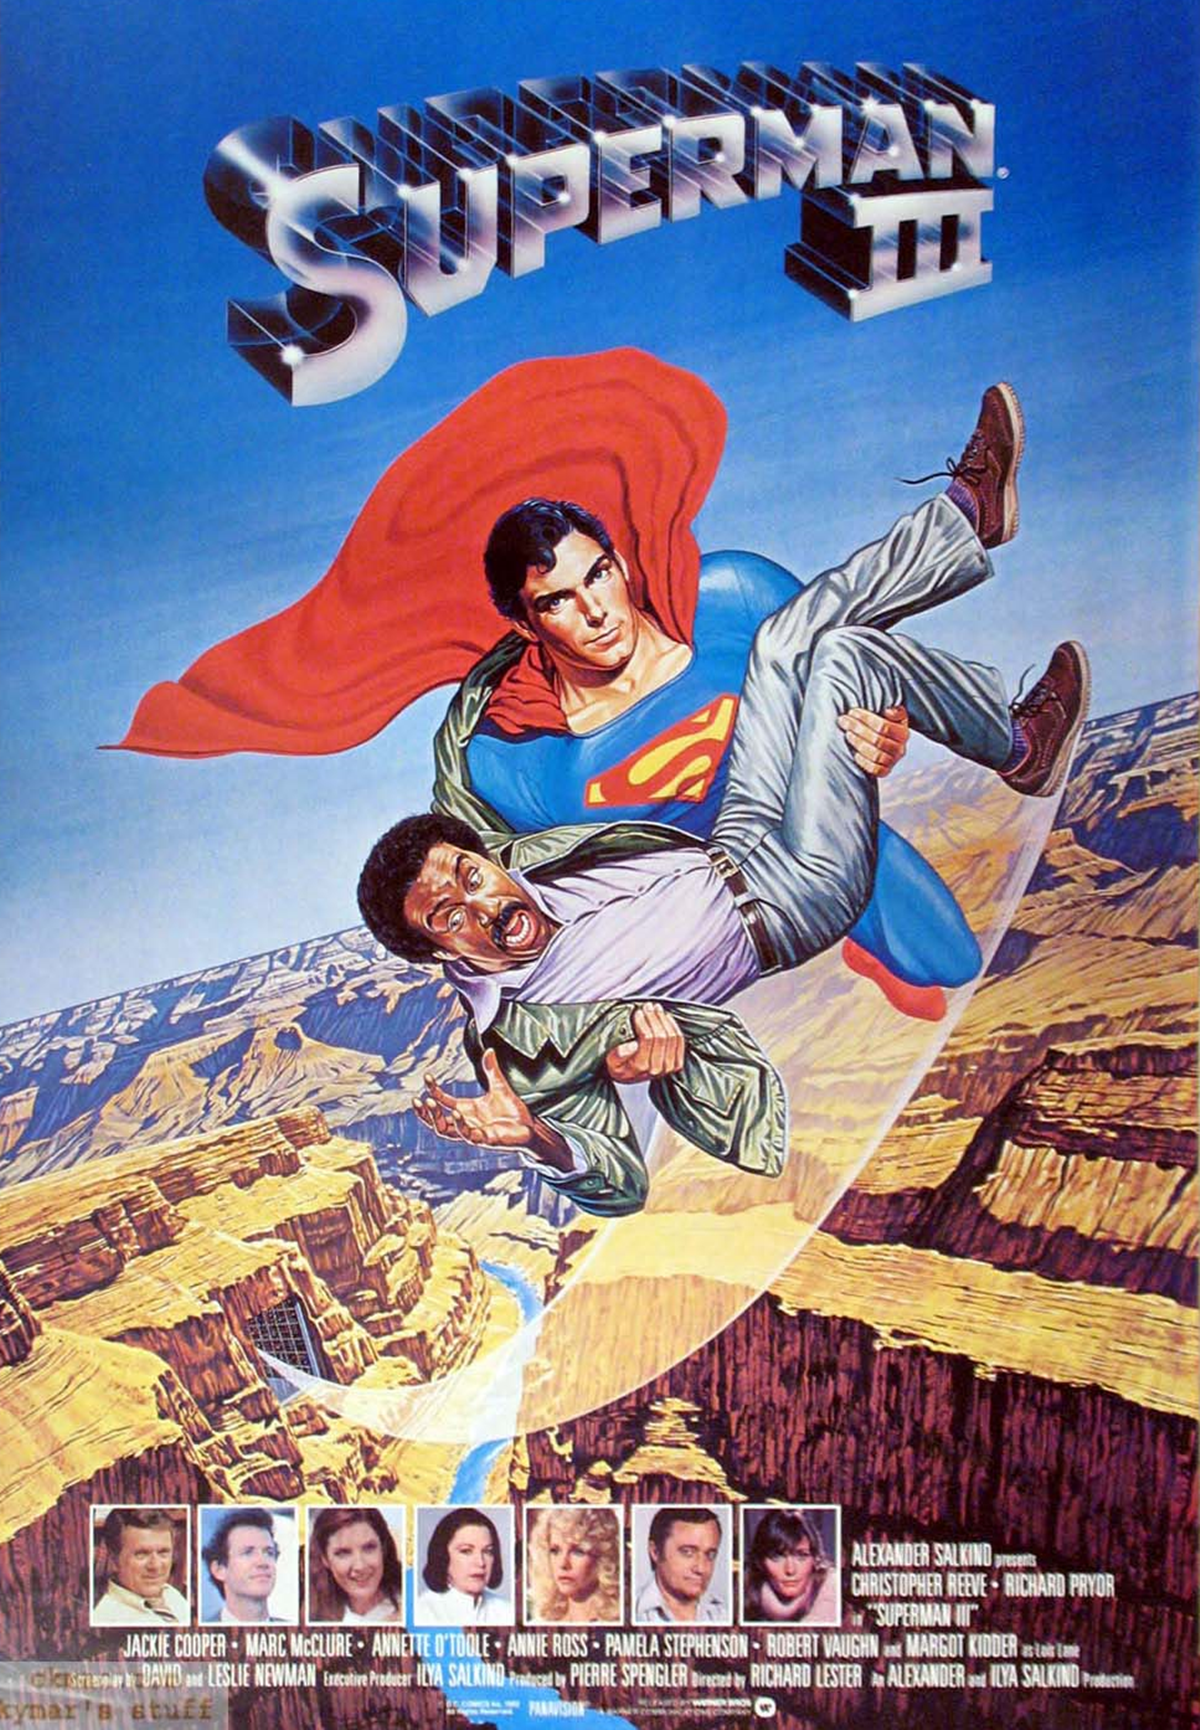 9 12 Things You May Have Missed In Christopher Reeve's Superman Films